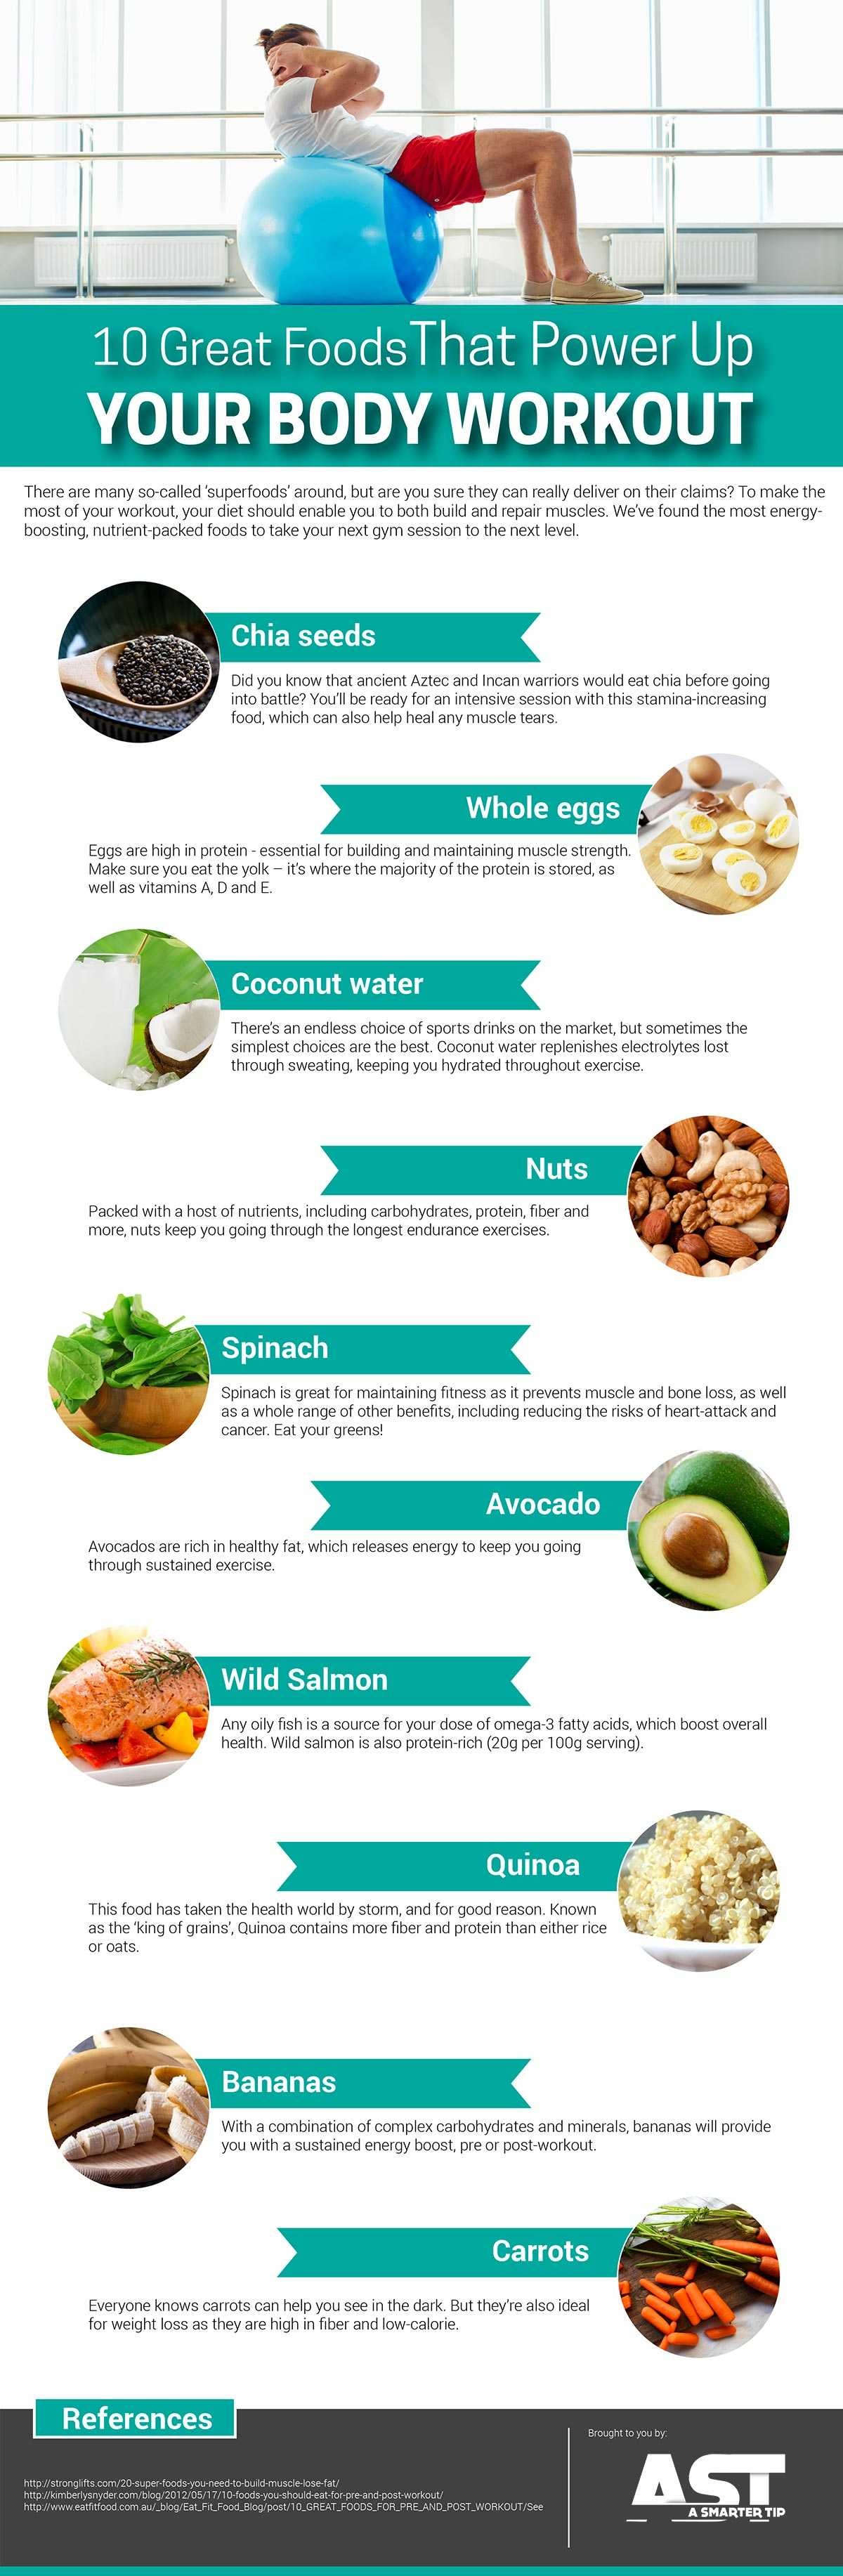 10 Great Foods Power Up Workout